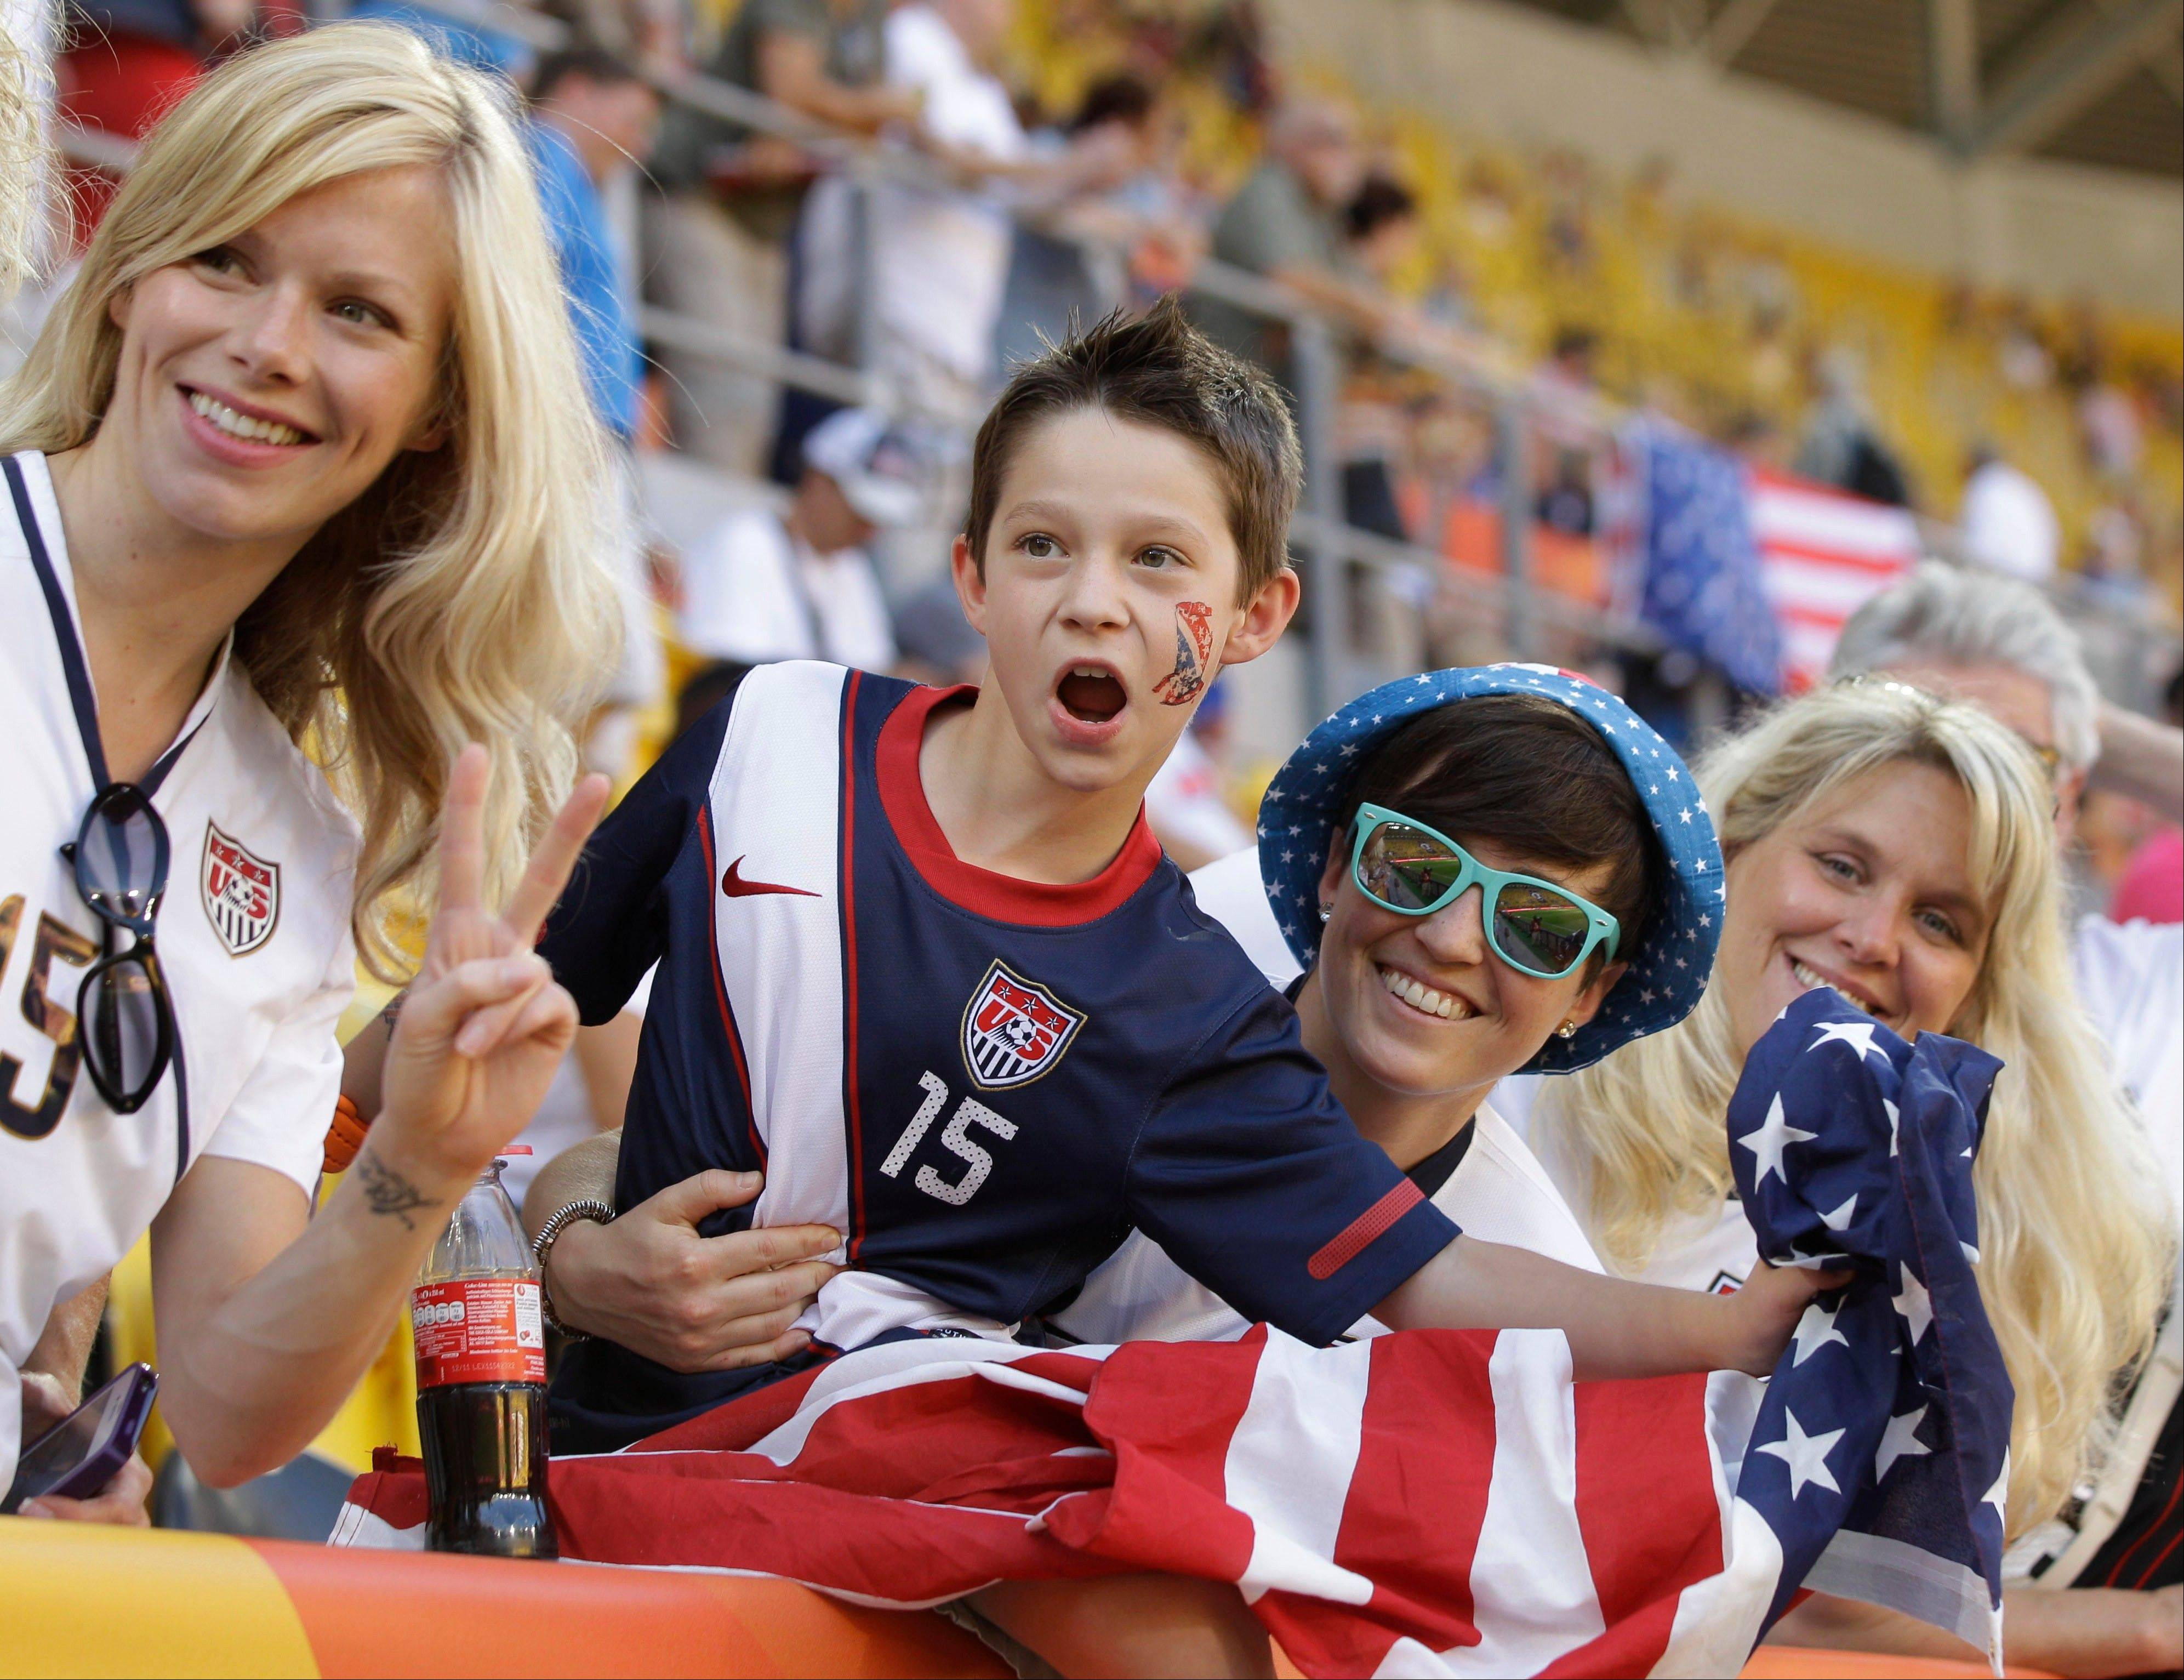 United States fans cheer during the World Cup match against North Korea on Tuesday.